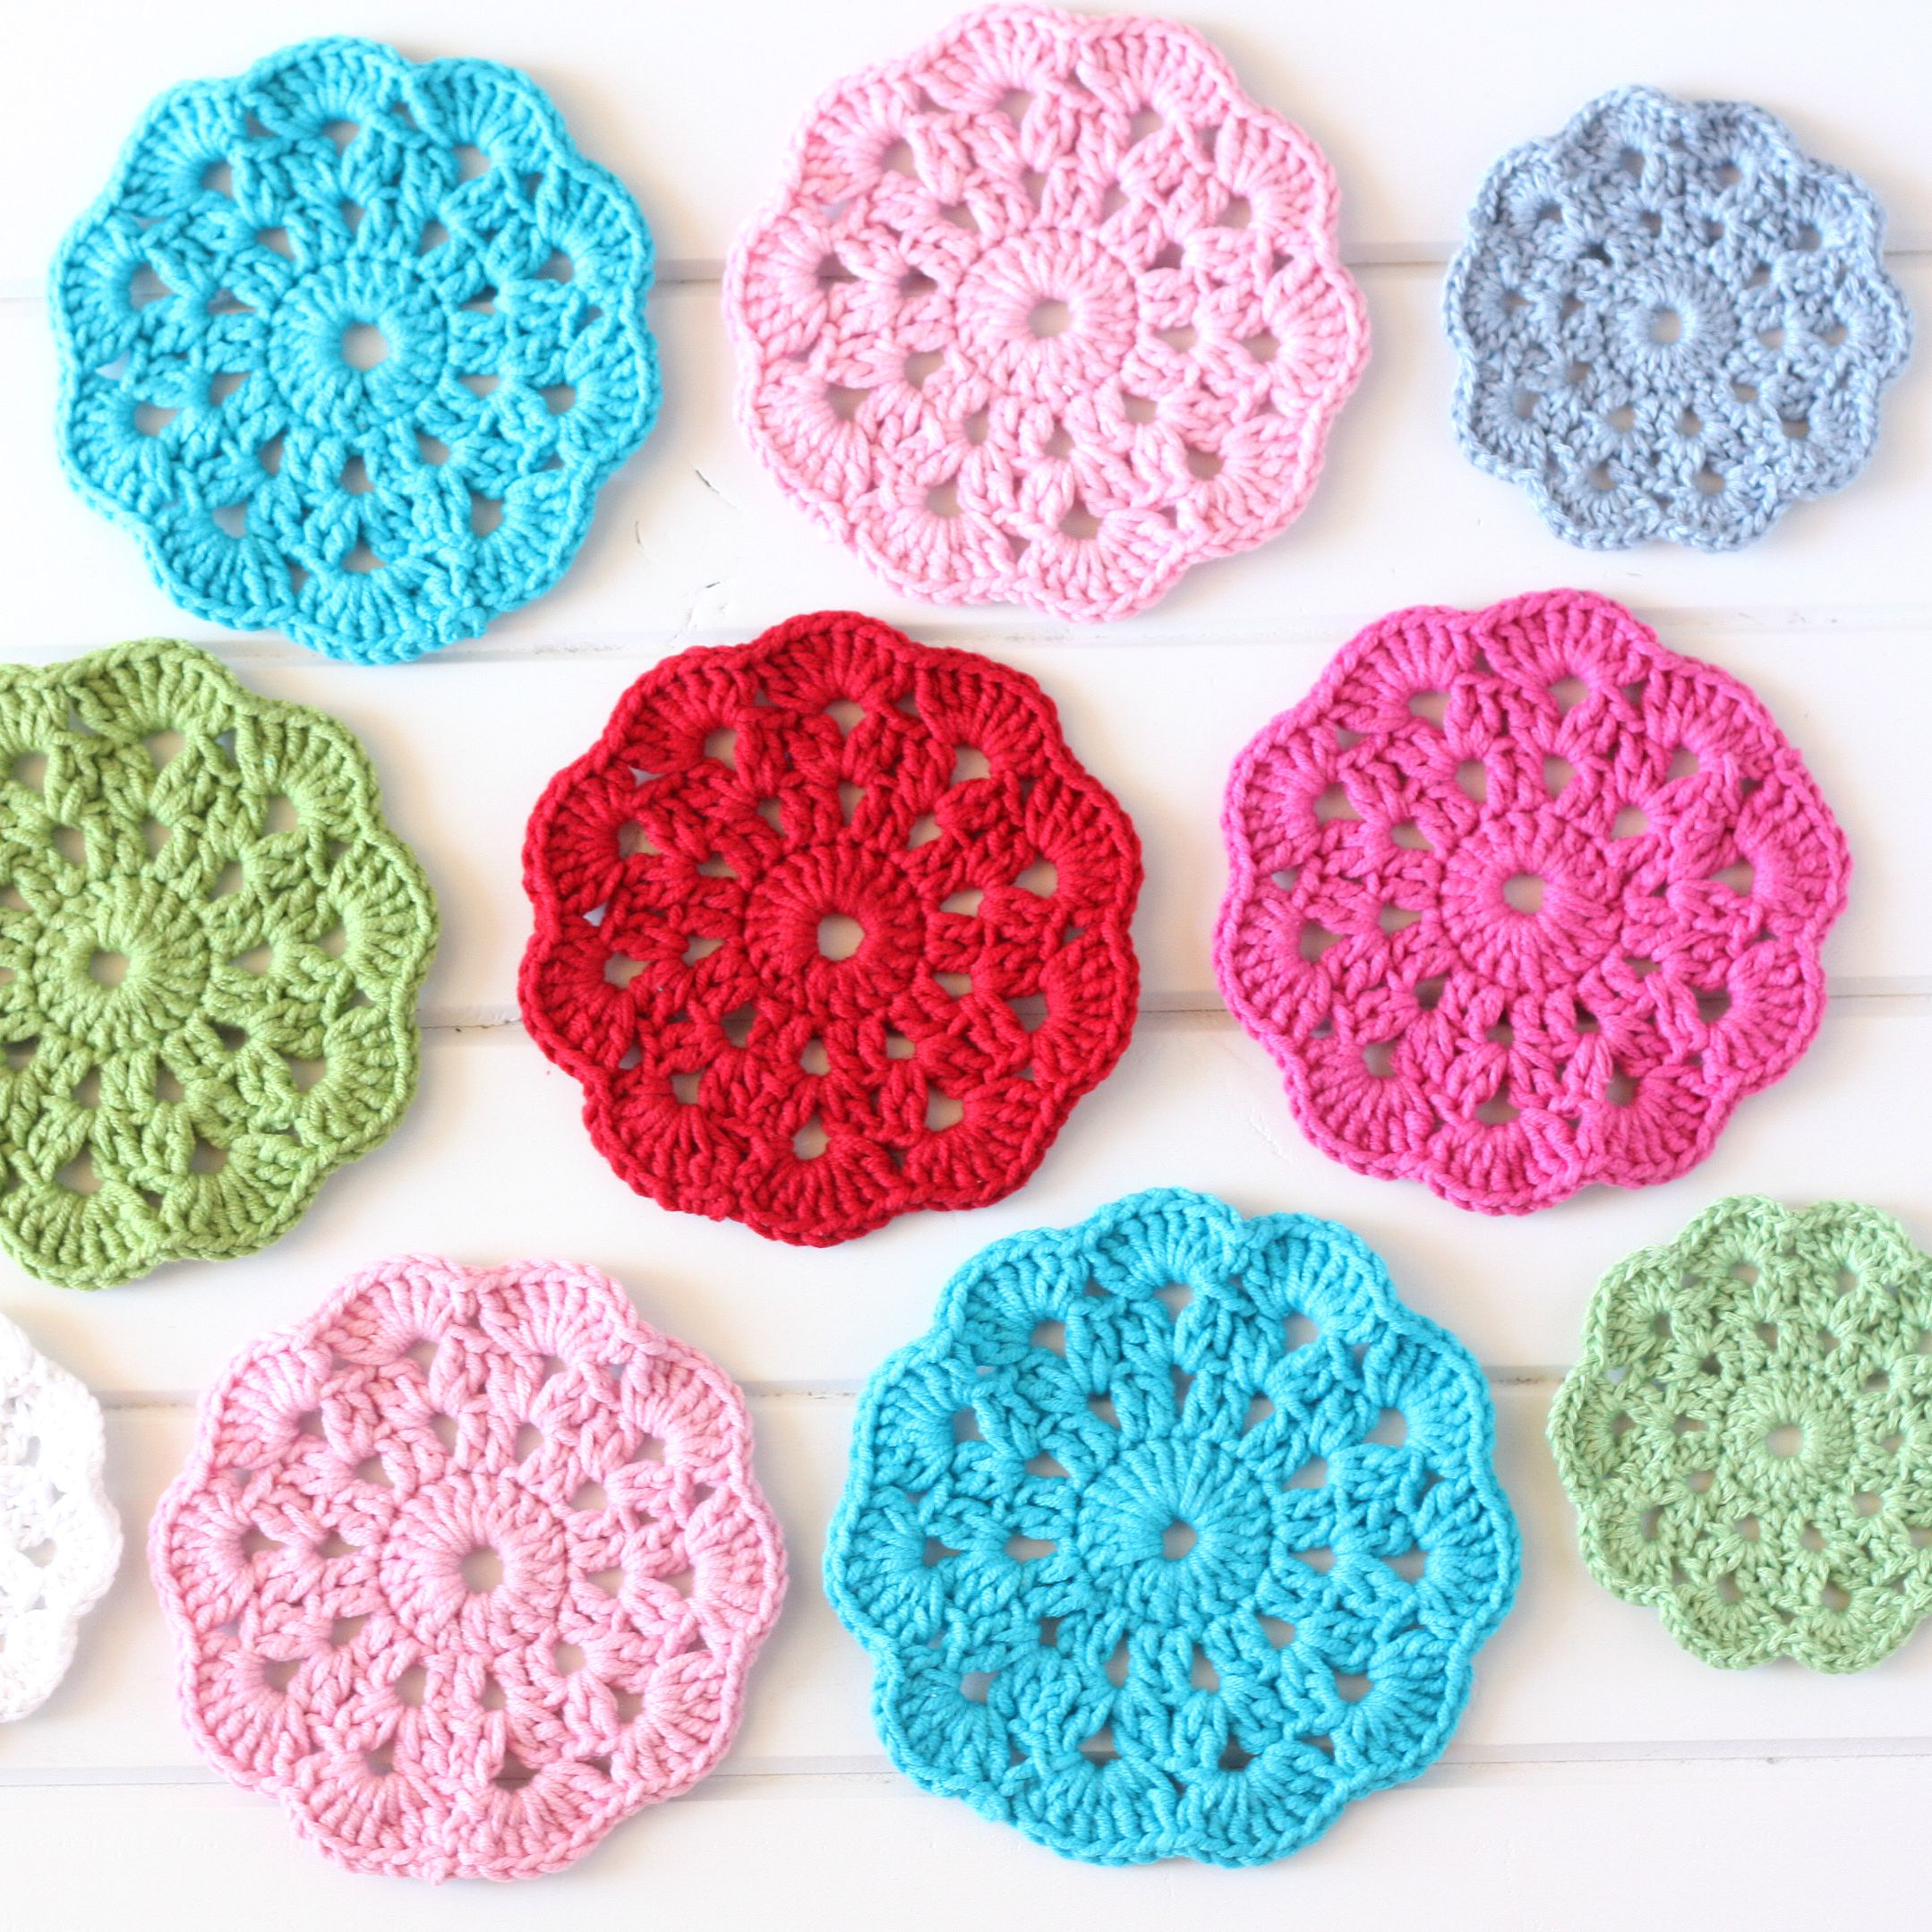 Free Crochet Patterns Of Coasters : Crochet Coasters A Spoonful of Sugar Bloglovin